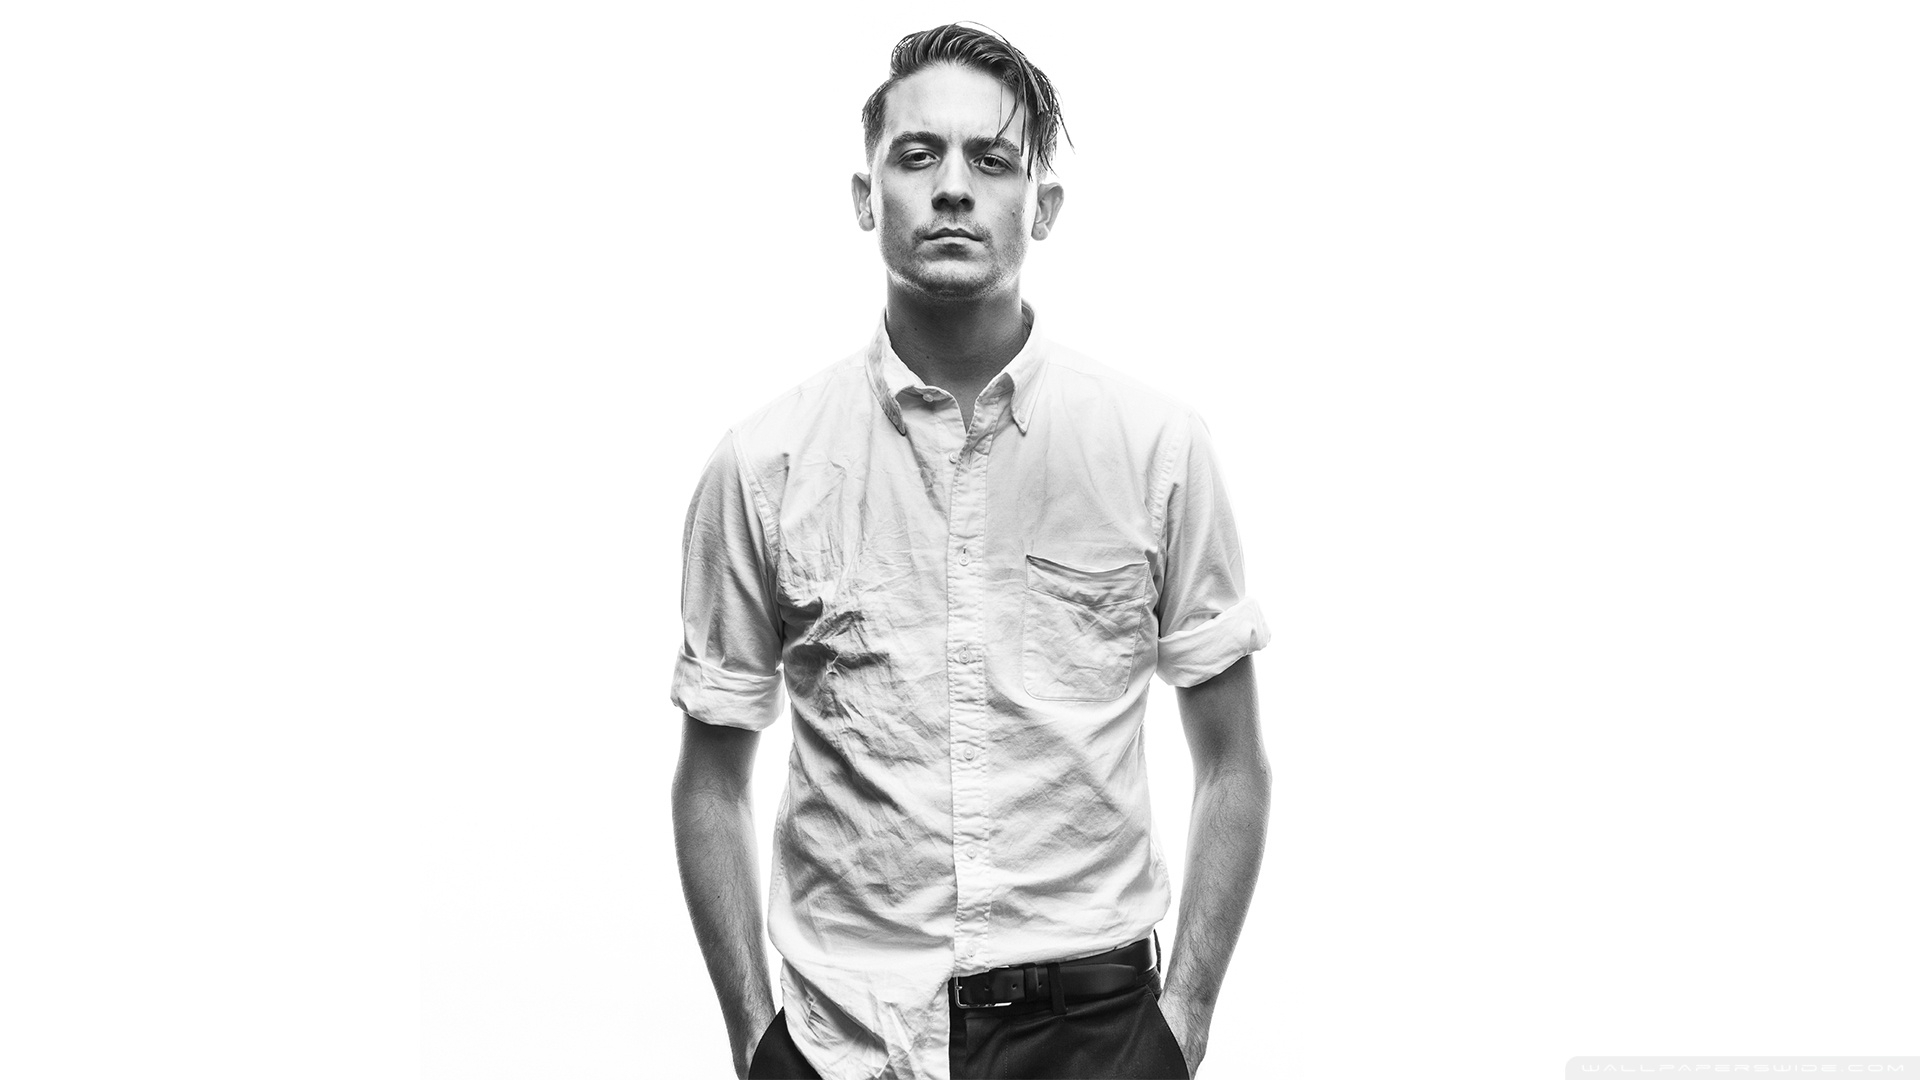 10 Best G Eazy Desktop Wallpaper FULL HD 1920×1080 For PC Desktop